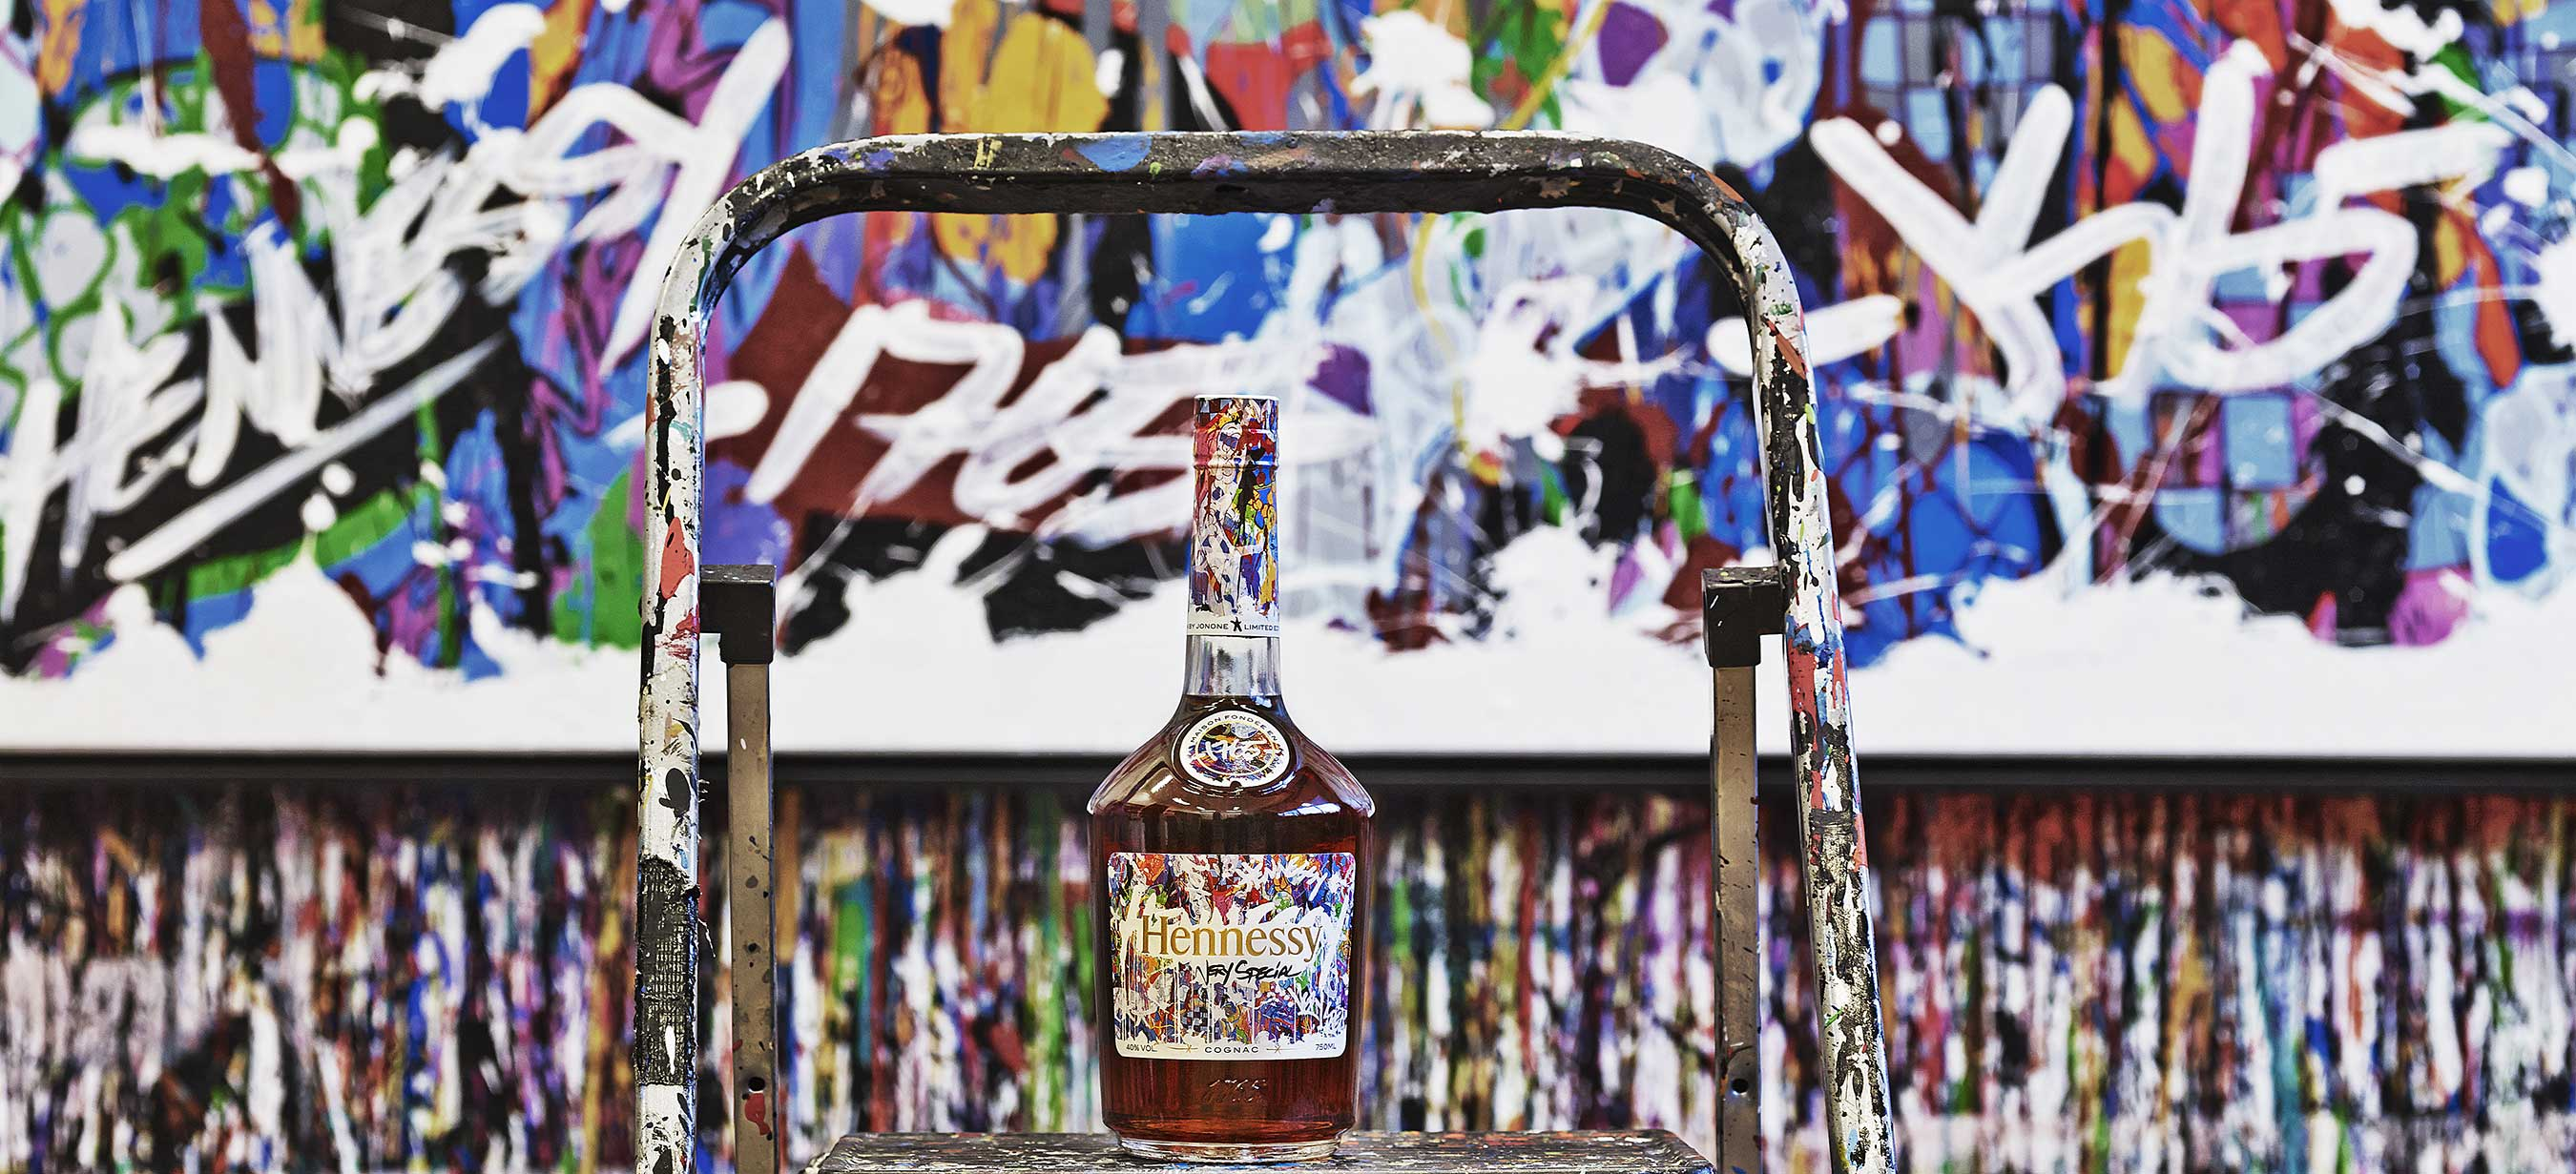 Artist JonOne Brings Color to the Mix